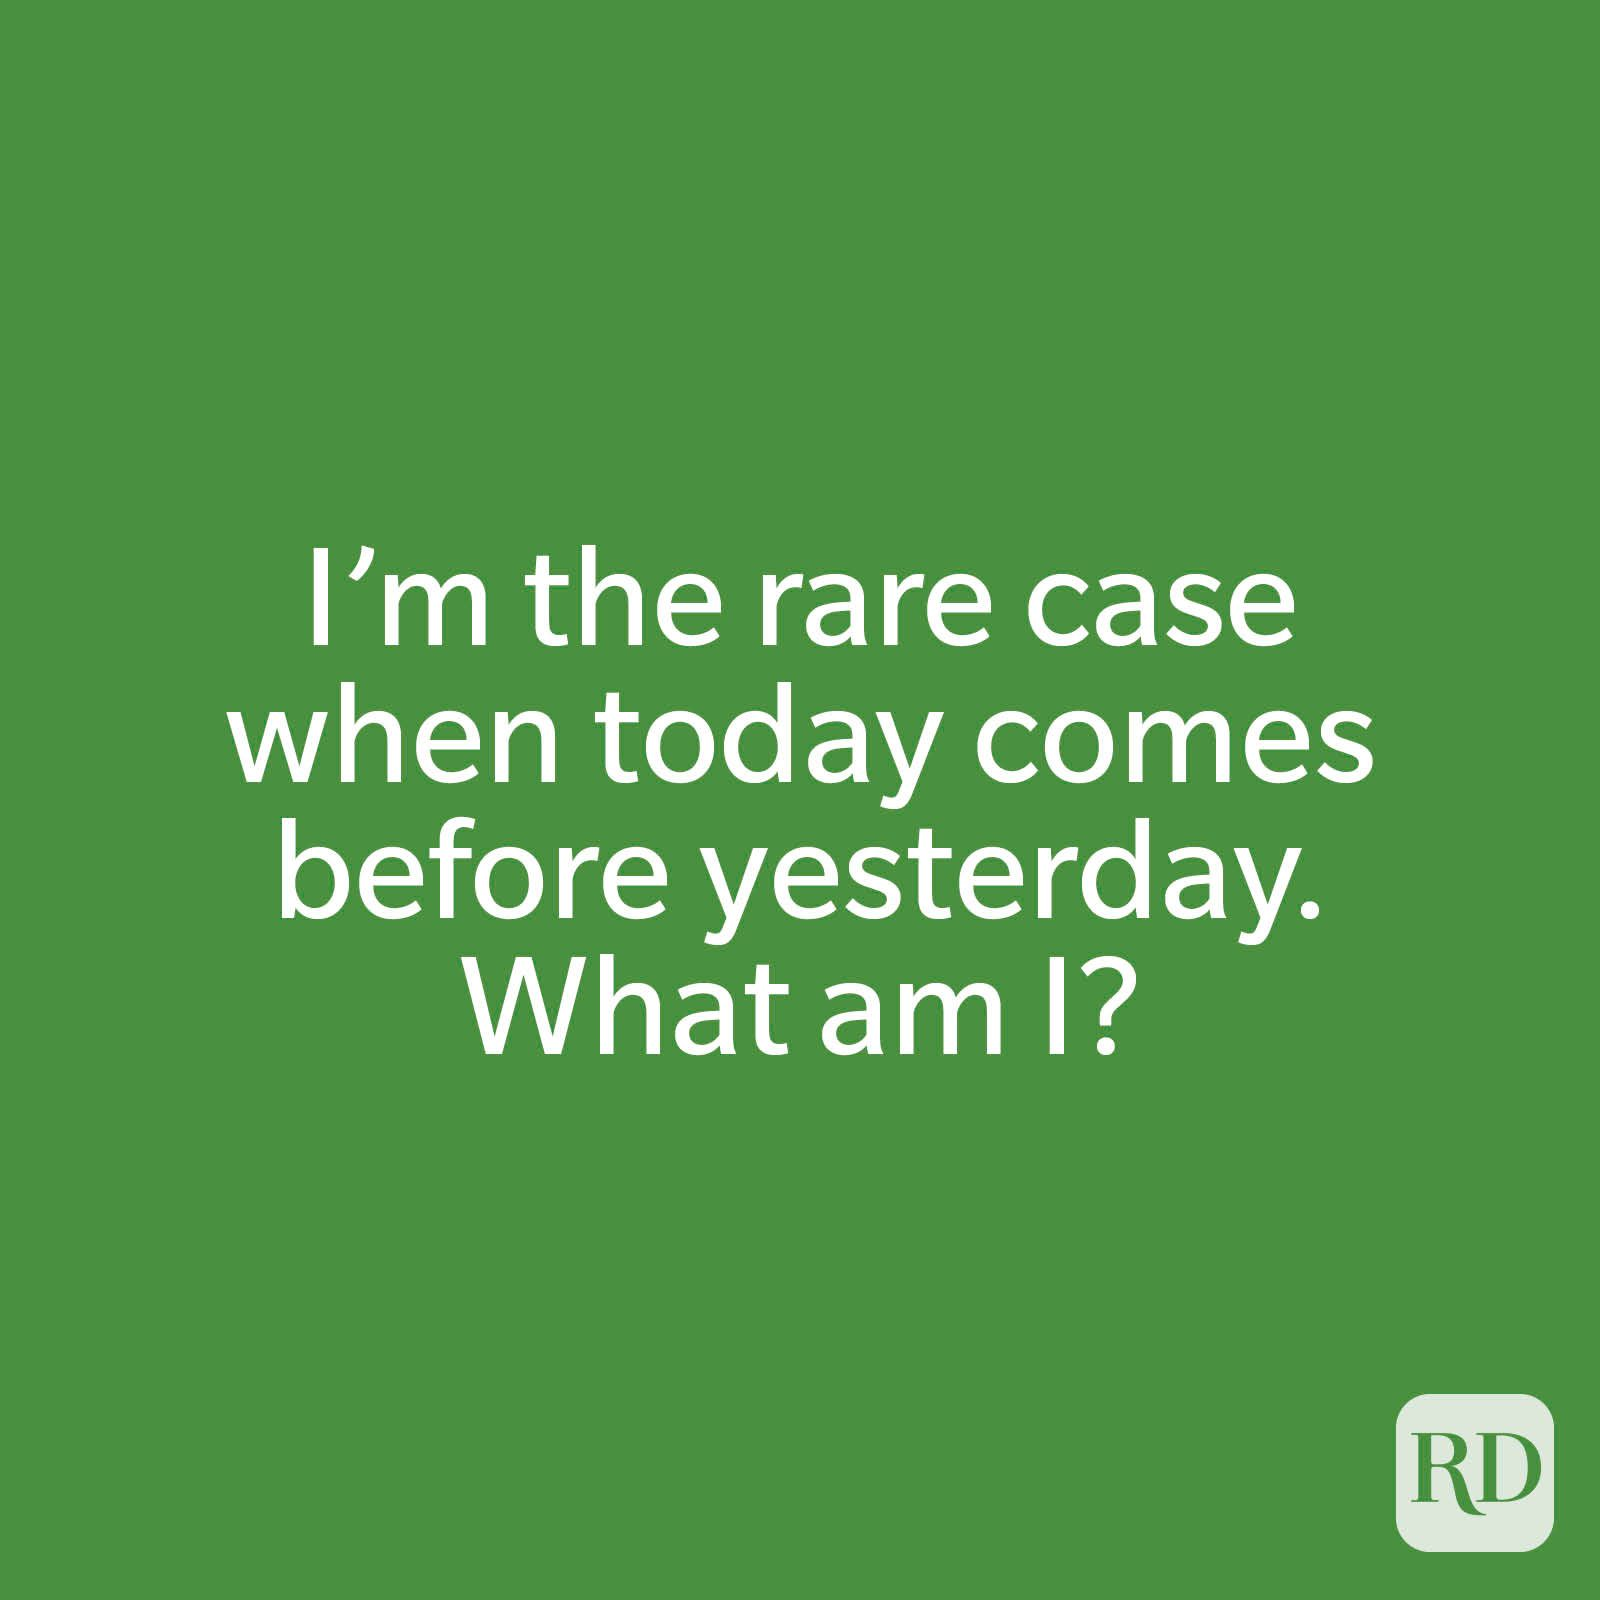 I'm the rare case when today comes before yesterday. What am I?